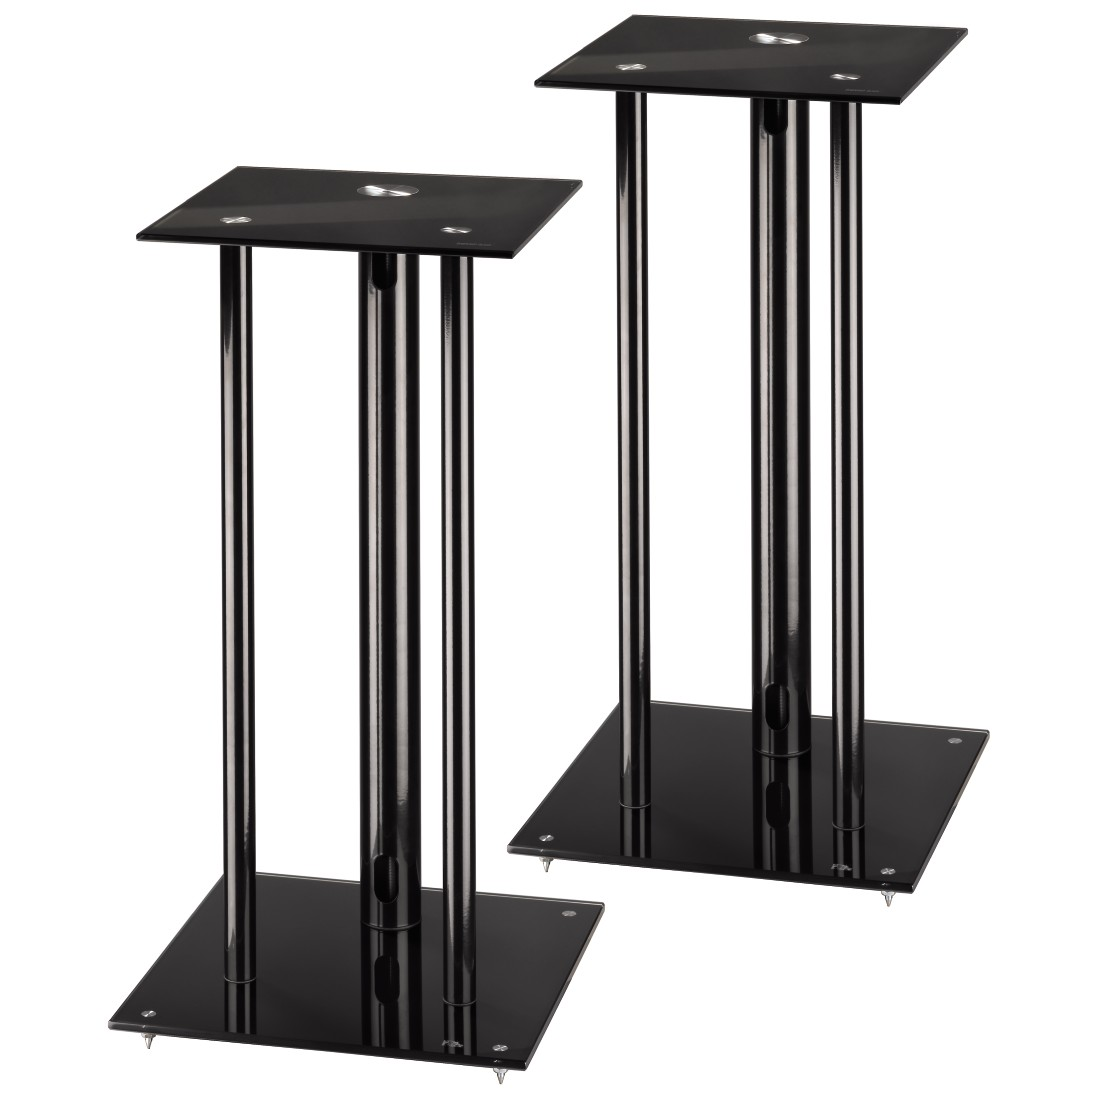 abx High-Res Image - Hama, Speaker Stand, black